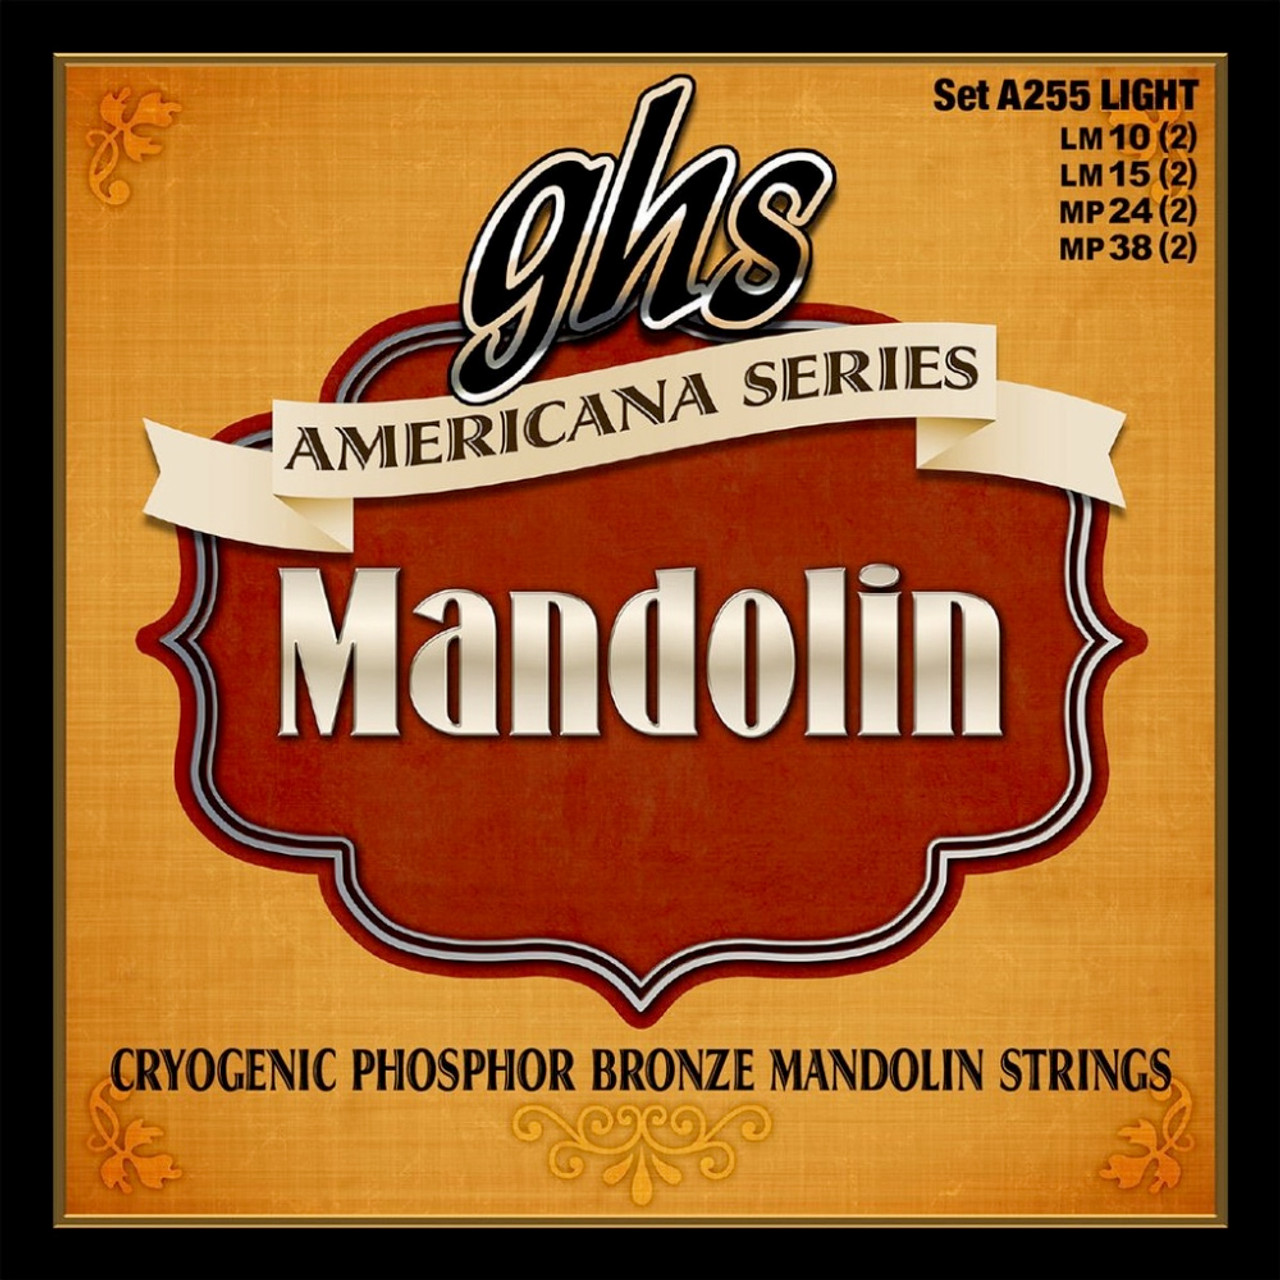 GHS Americana Mandolin Strings Ireland